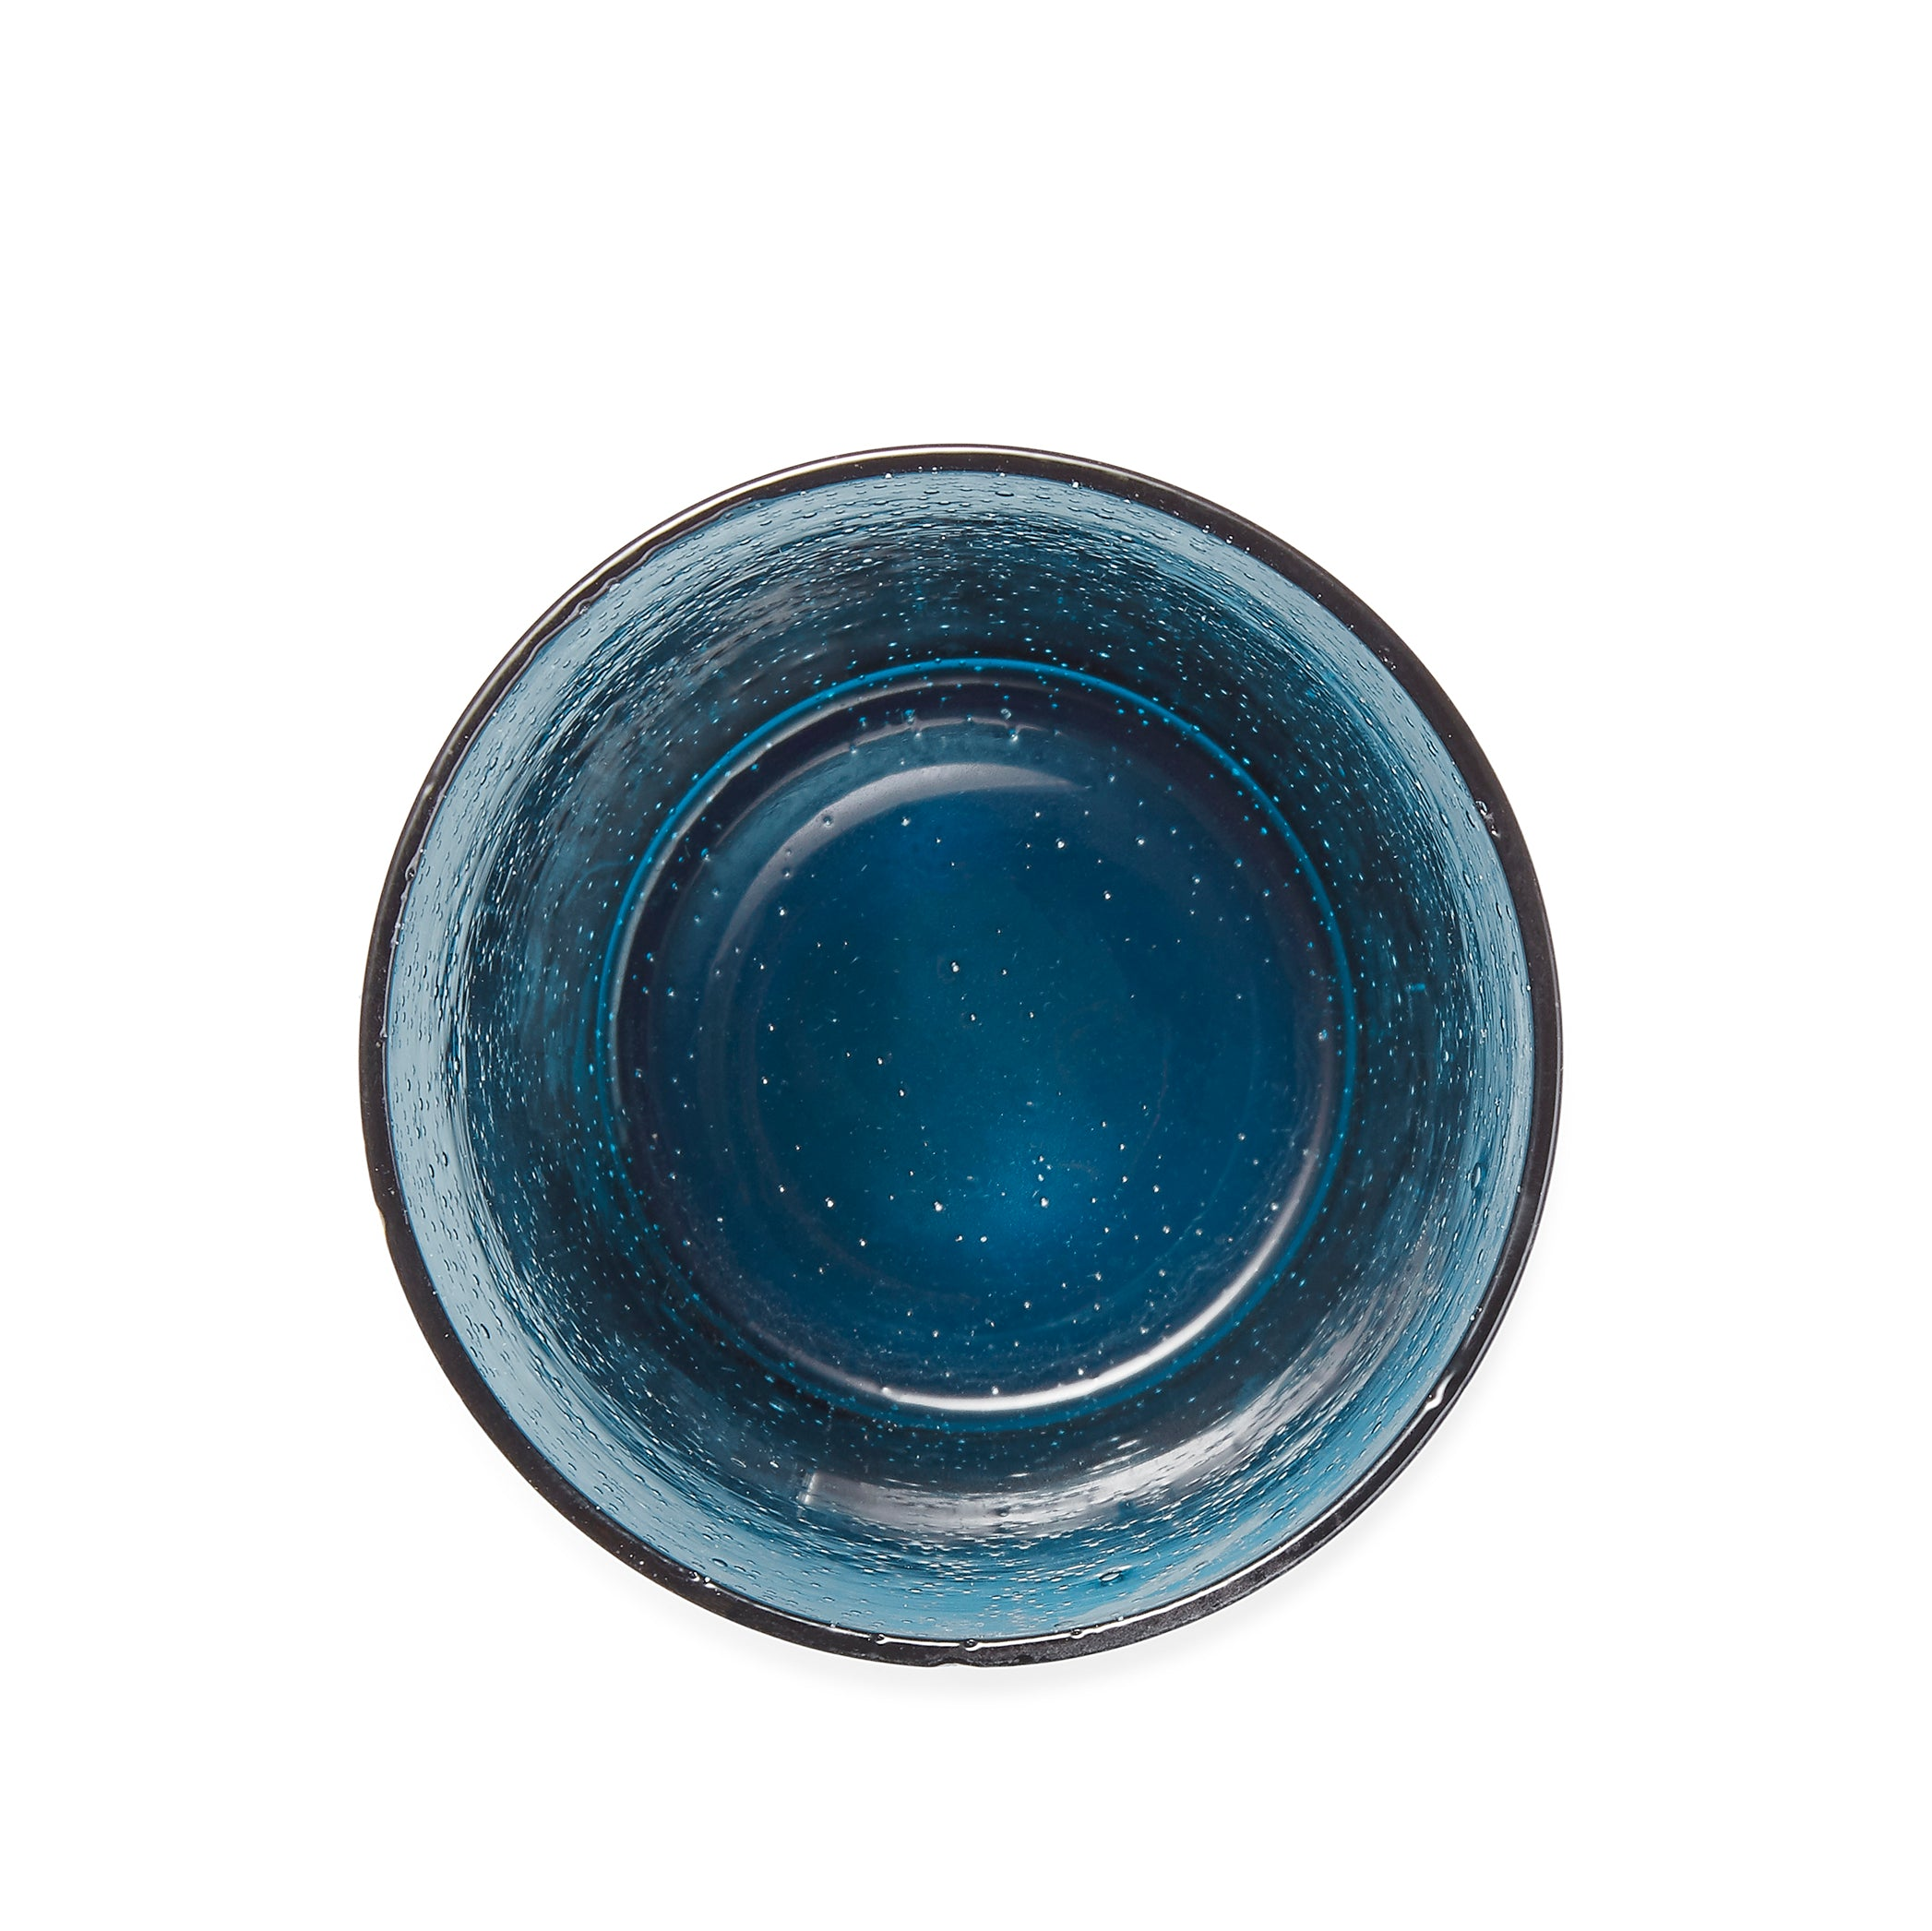 Handmade Glass Tumbler in Blue